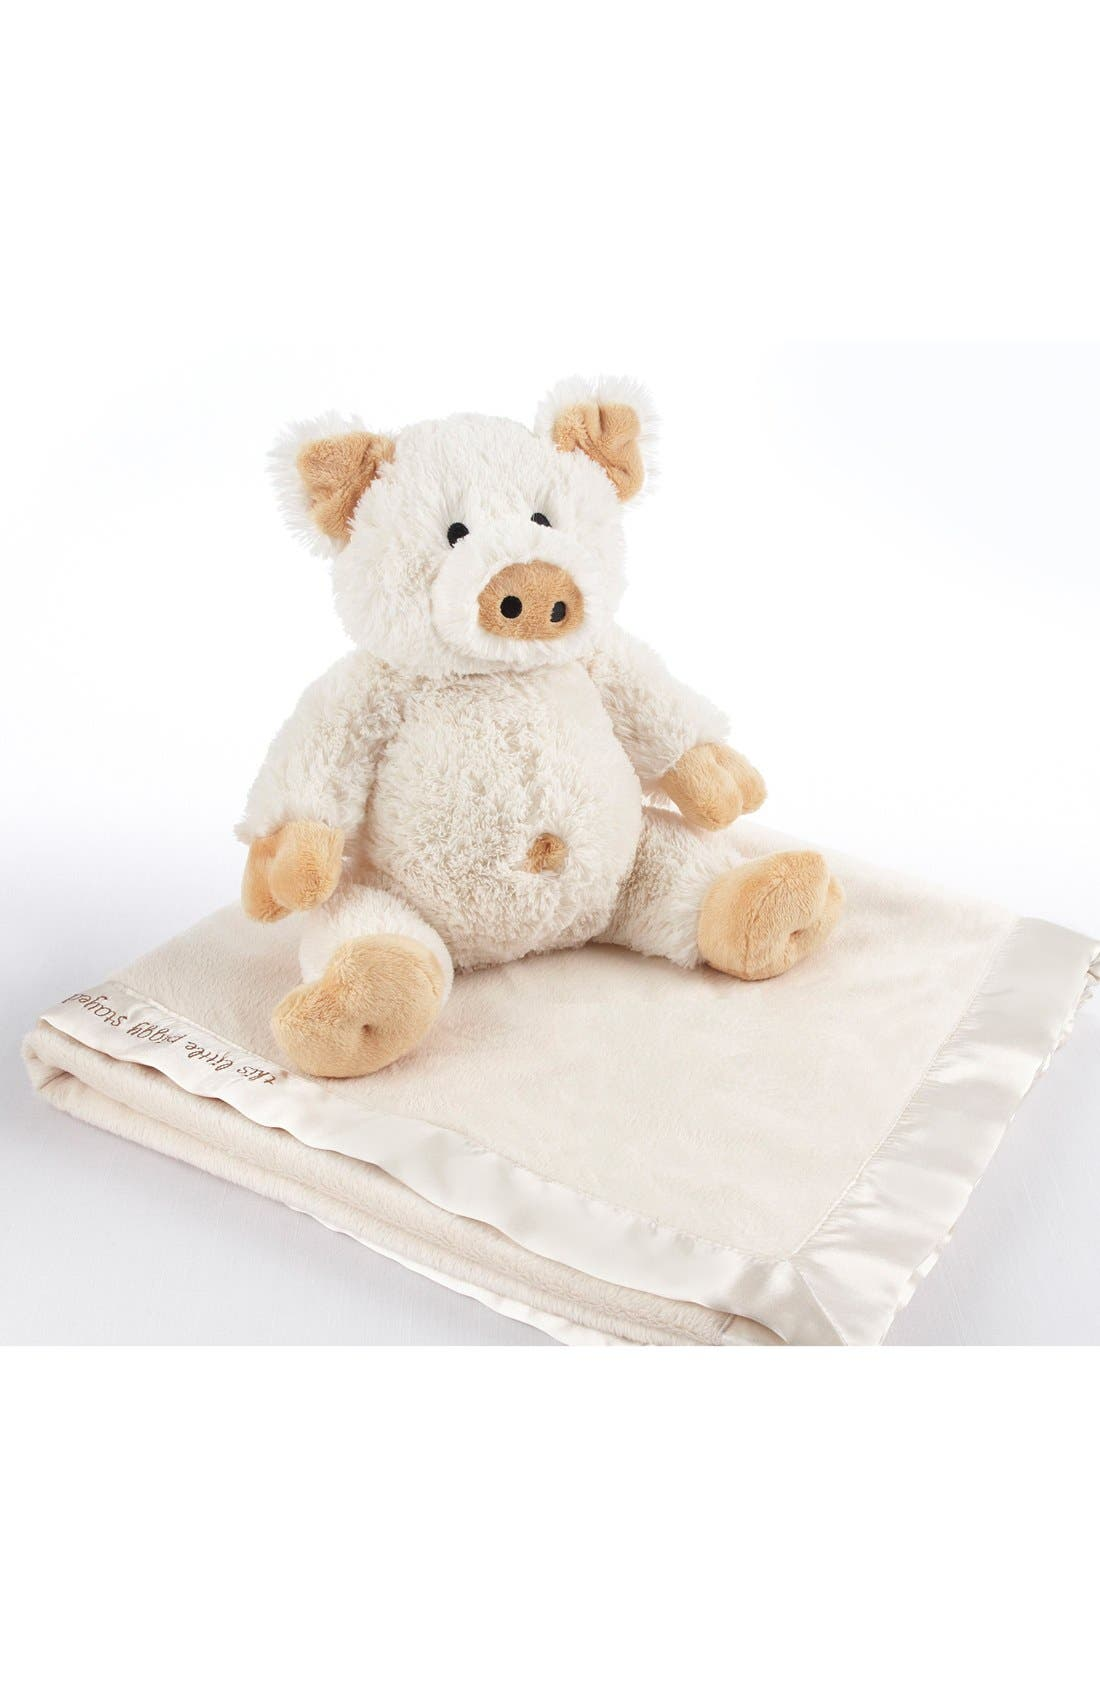 Pig Stuffed Animal & Blanket Set,                             Main thumbnail 1, color,                             Cream